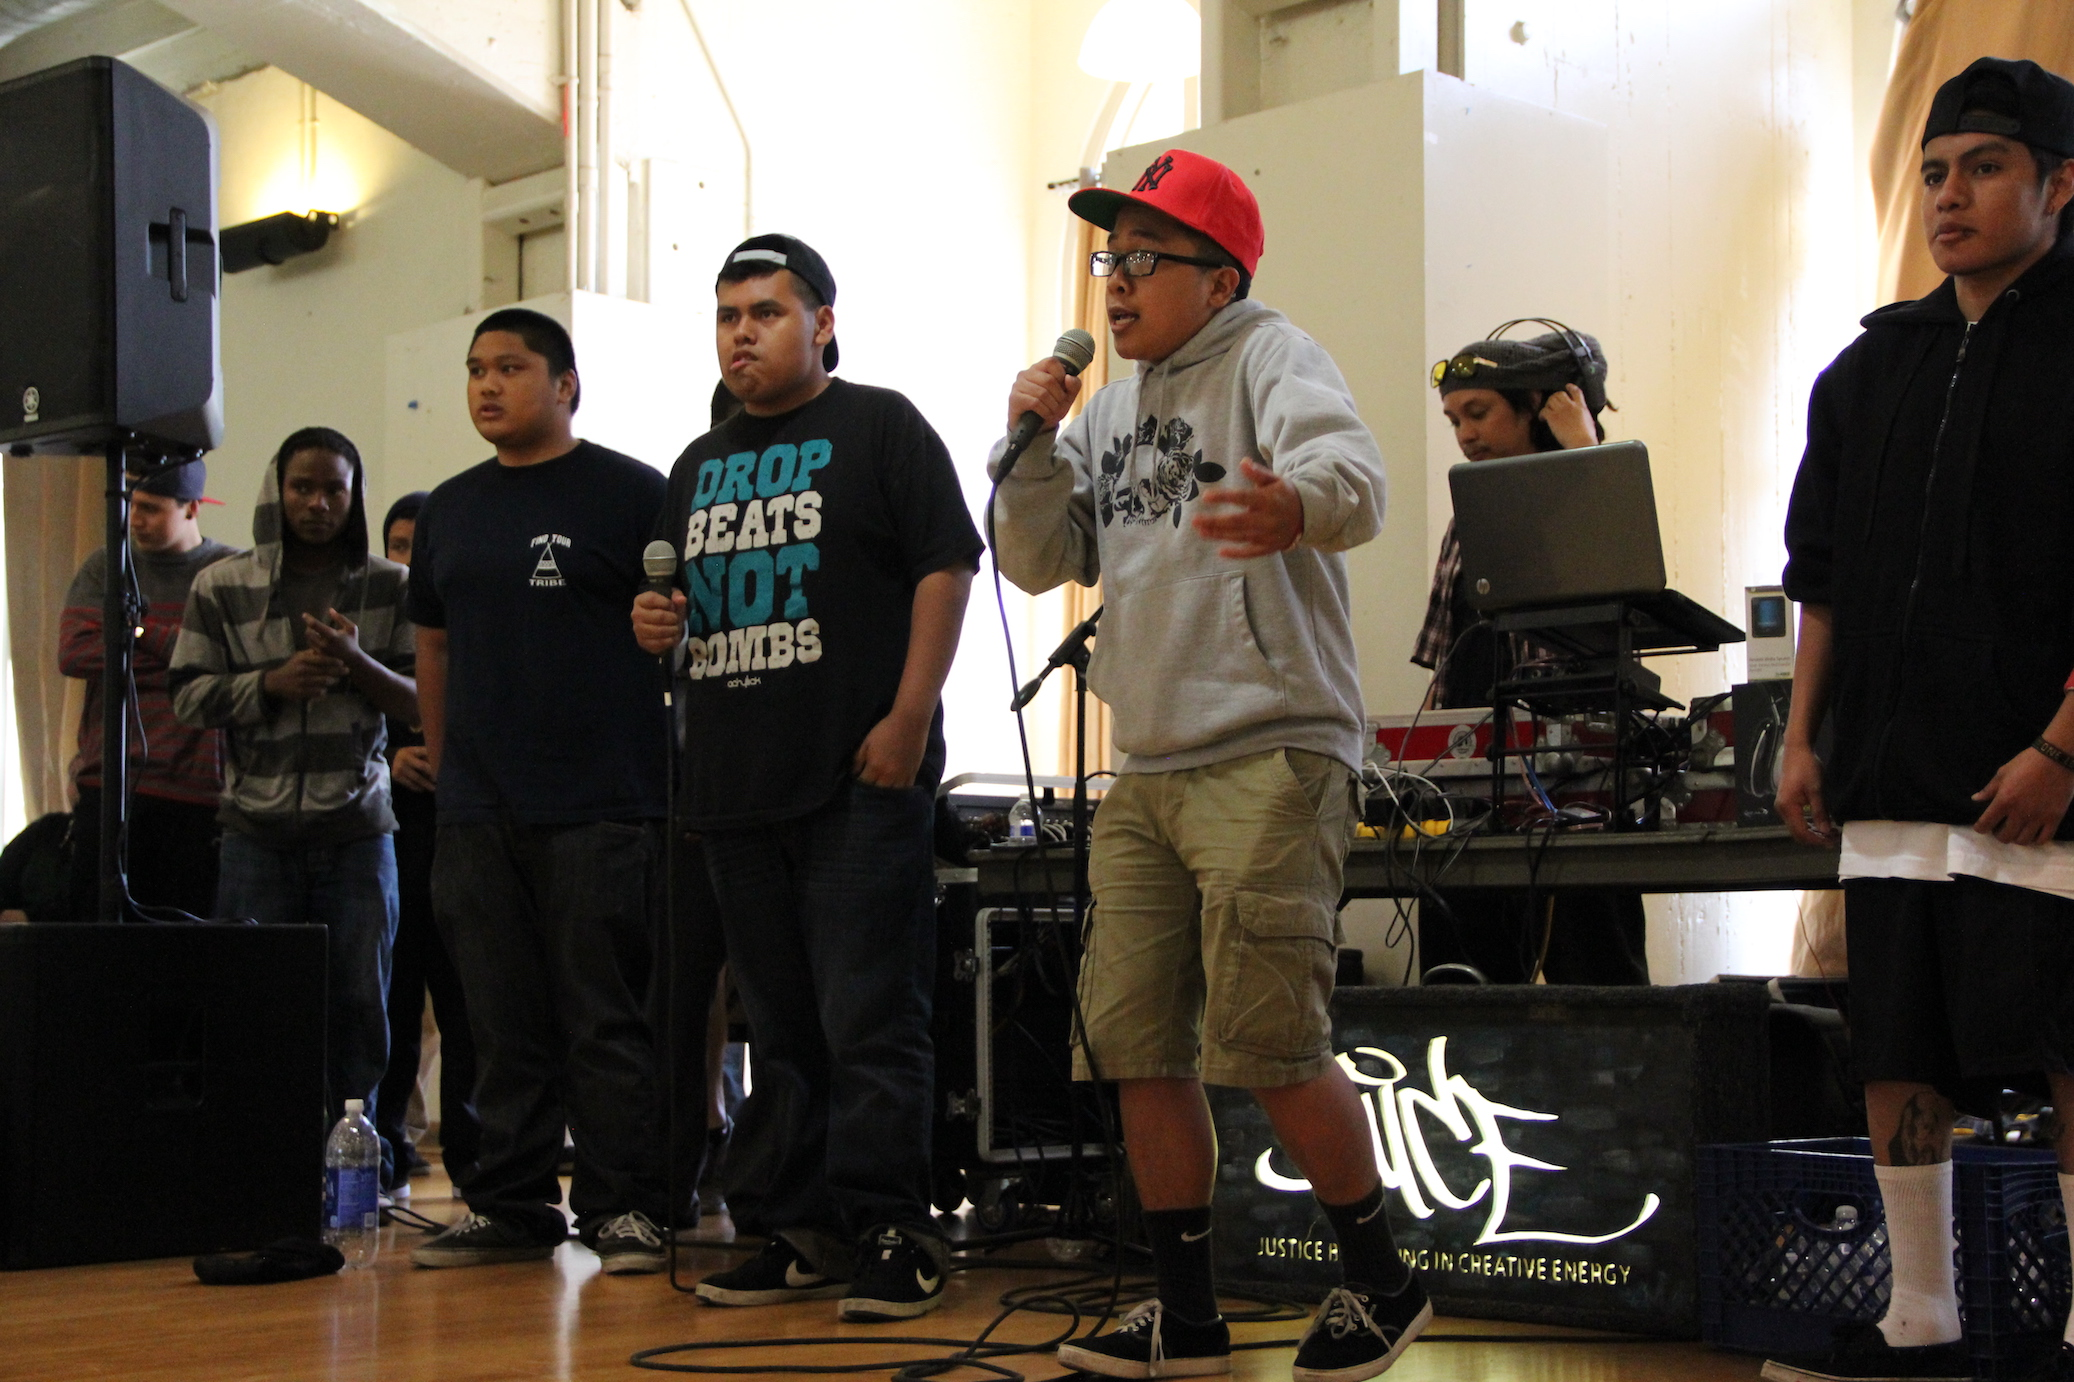 JUiCE Los Angeles Hip Hop Nonprofit Breakdance Music Art Community Youth Breakdance Los Angeles Young Emcee Spoken Word Rythm.JPG